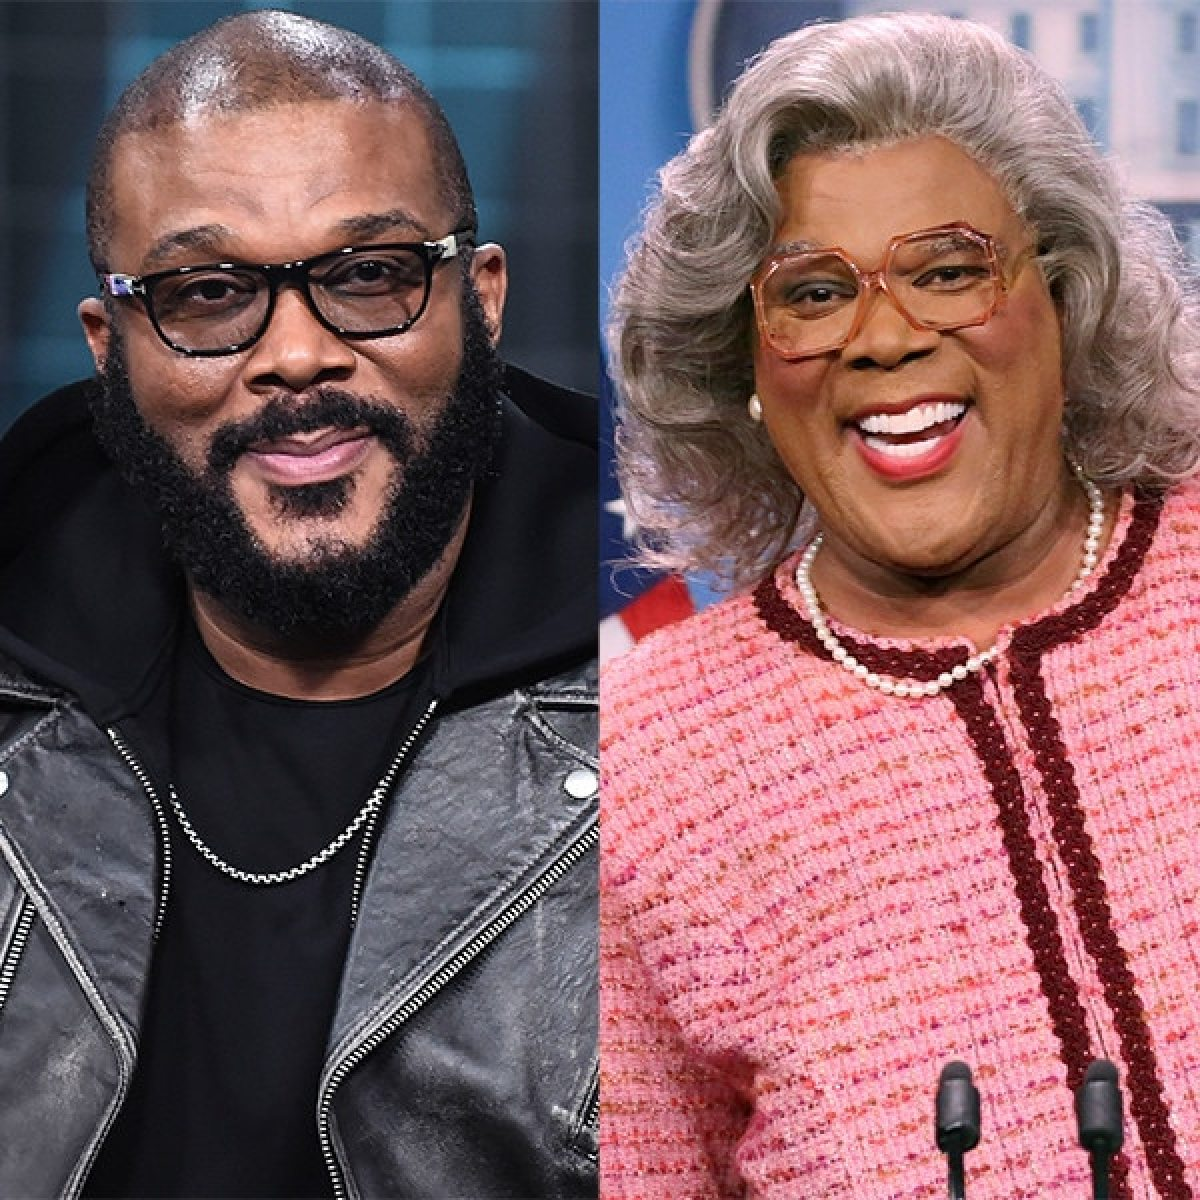 Tyler Perry Announces The Return Of Madea, Exclusive To Netflix